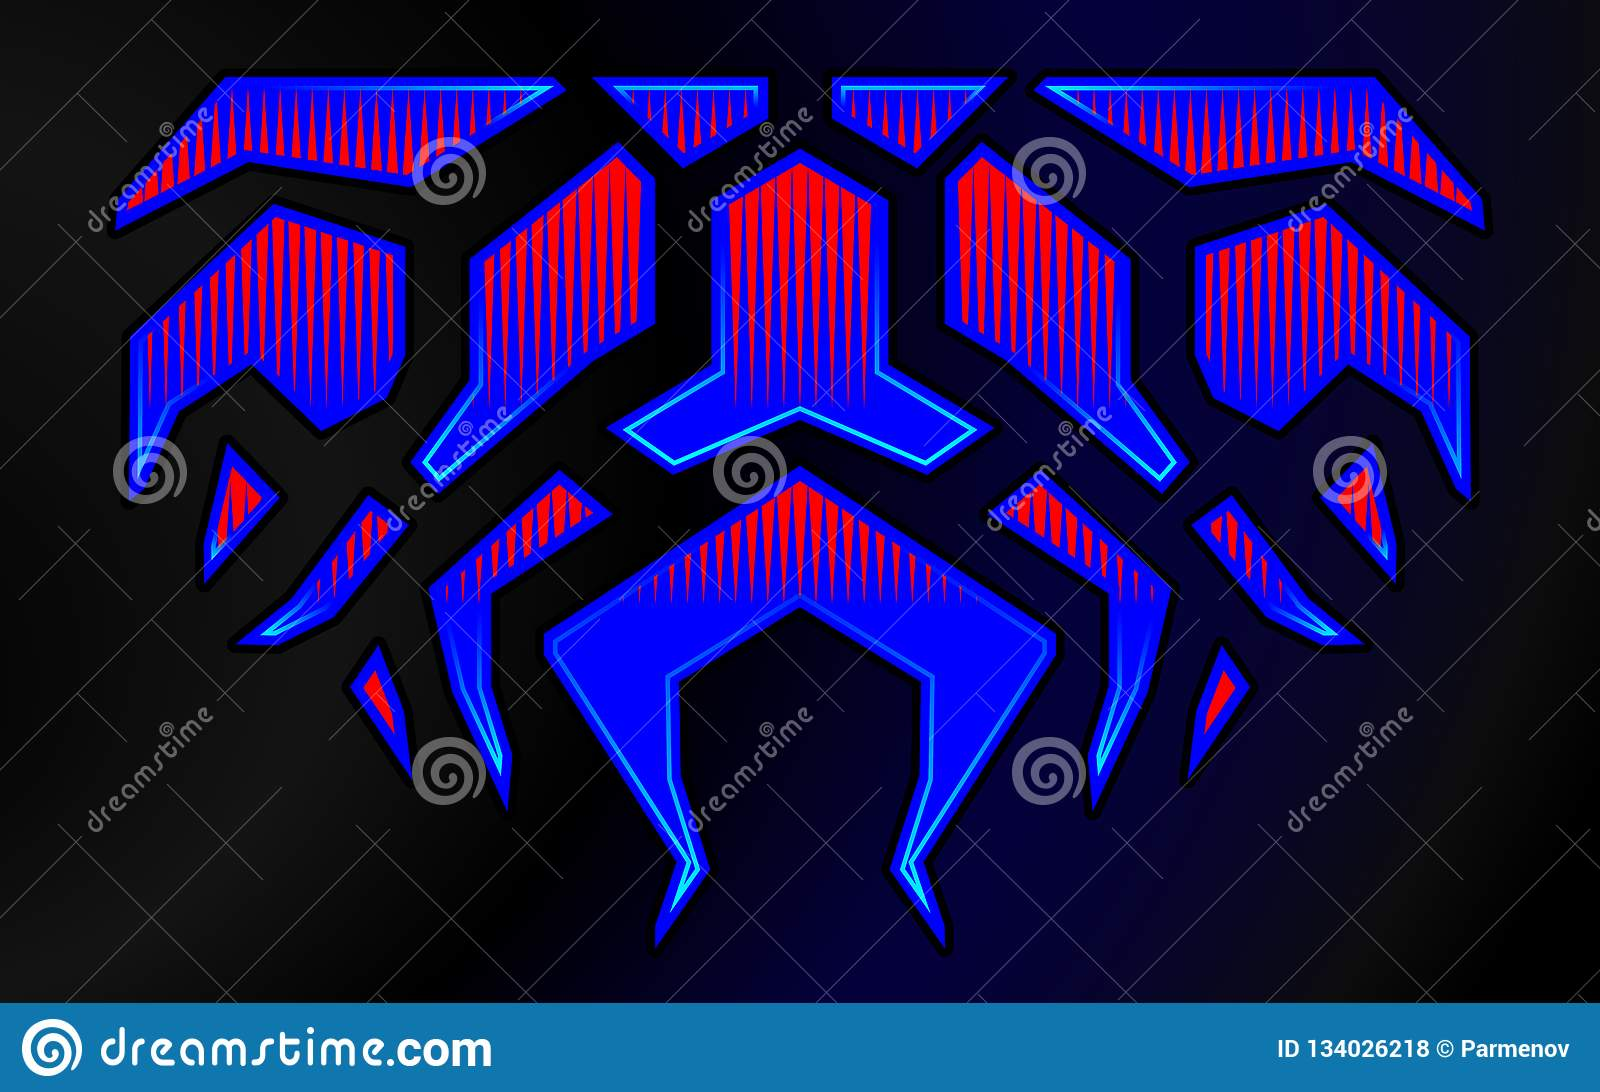 Blazing fire decals for the hood of the car hot rod racing flames vinyl ready tribal flames vehicle and motorbike stickers with burning effect isolated